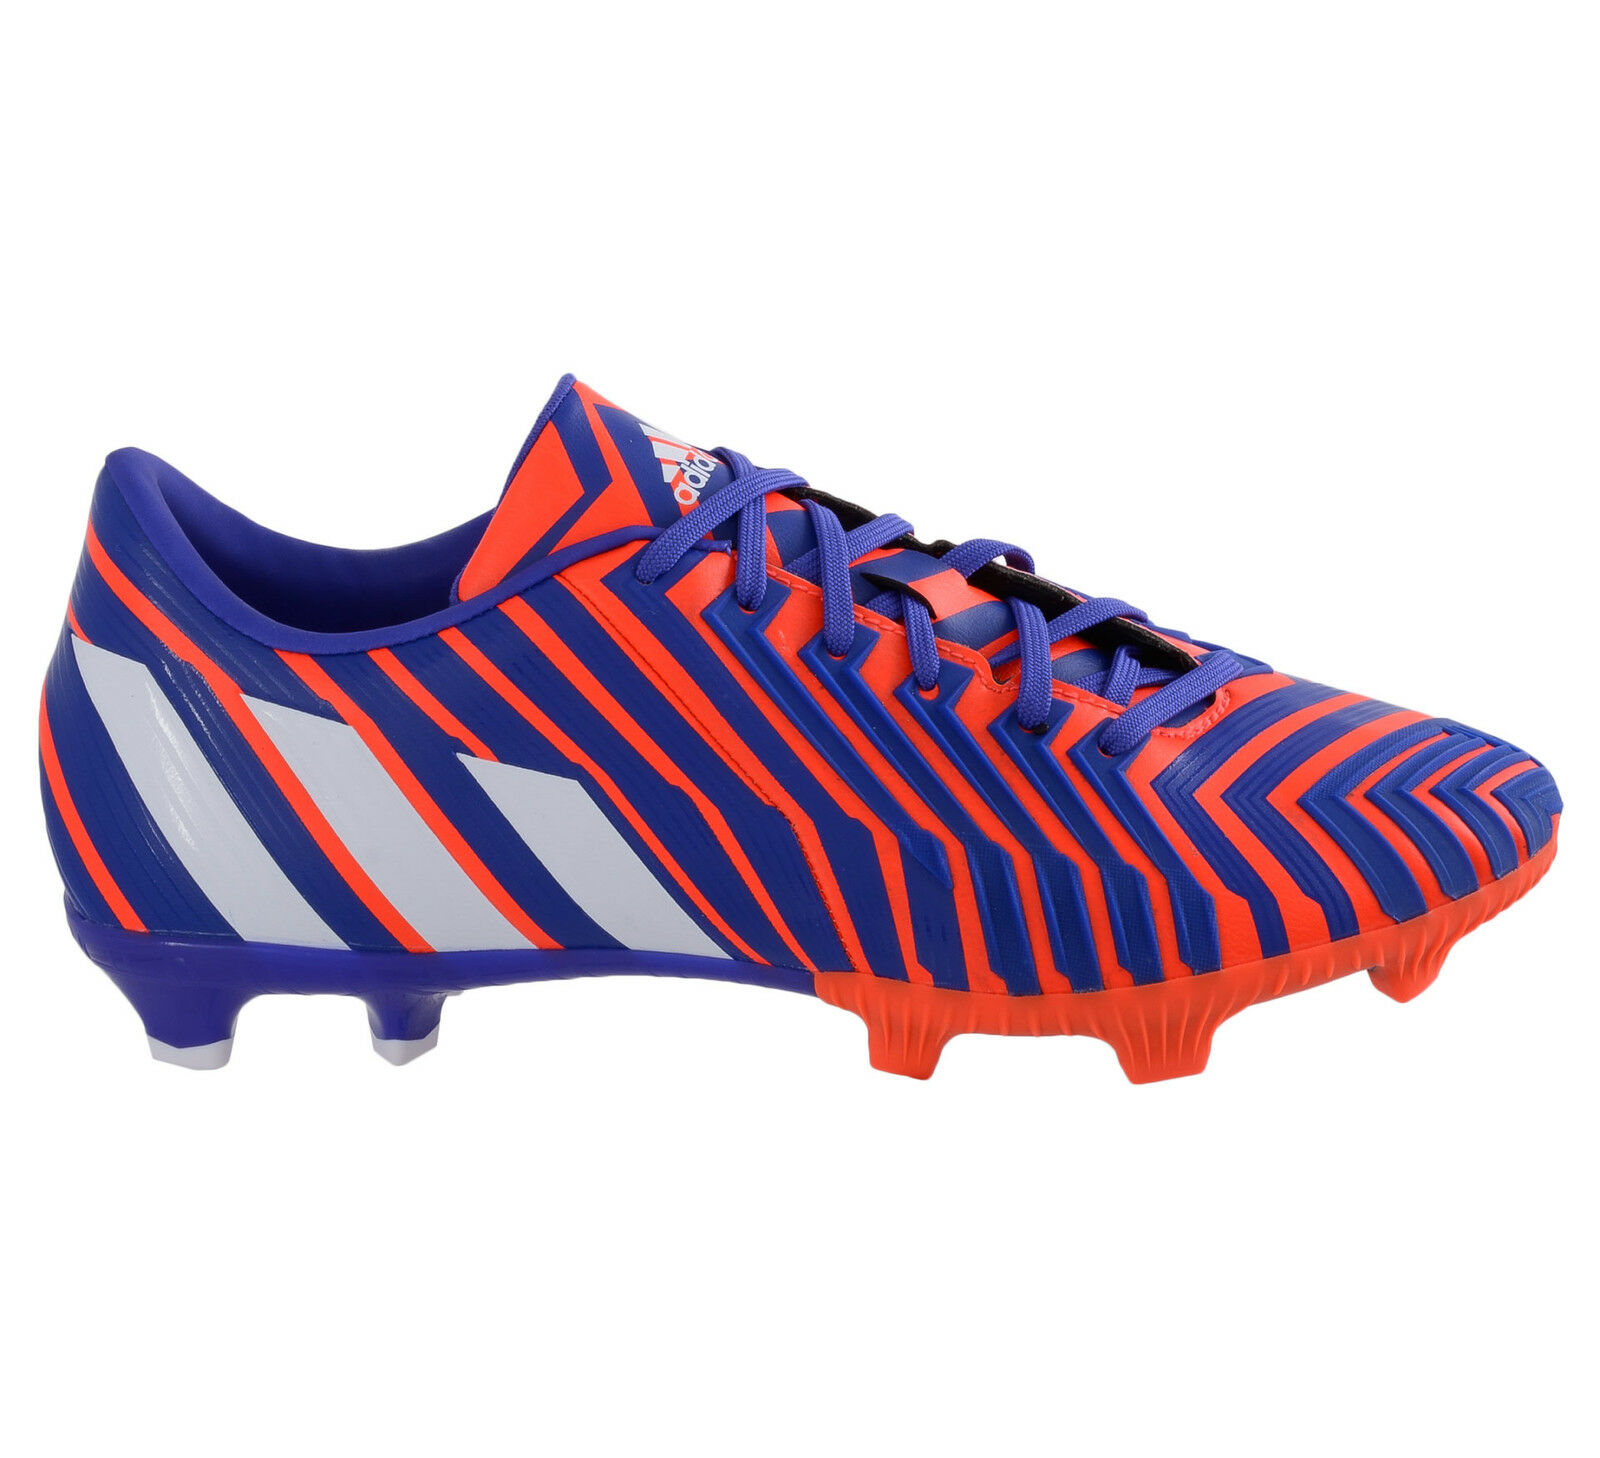 Adidas Predator Absolion Instinct FG red white purple [B35462]